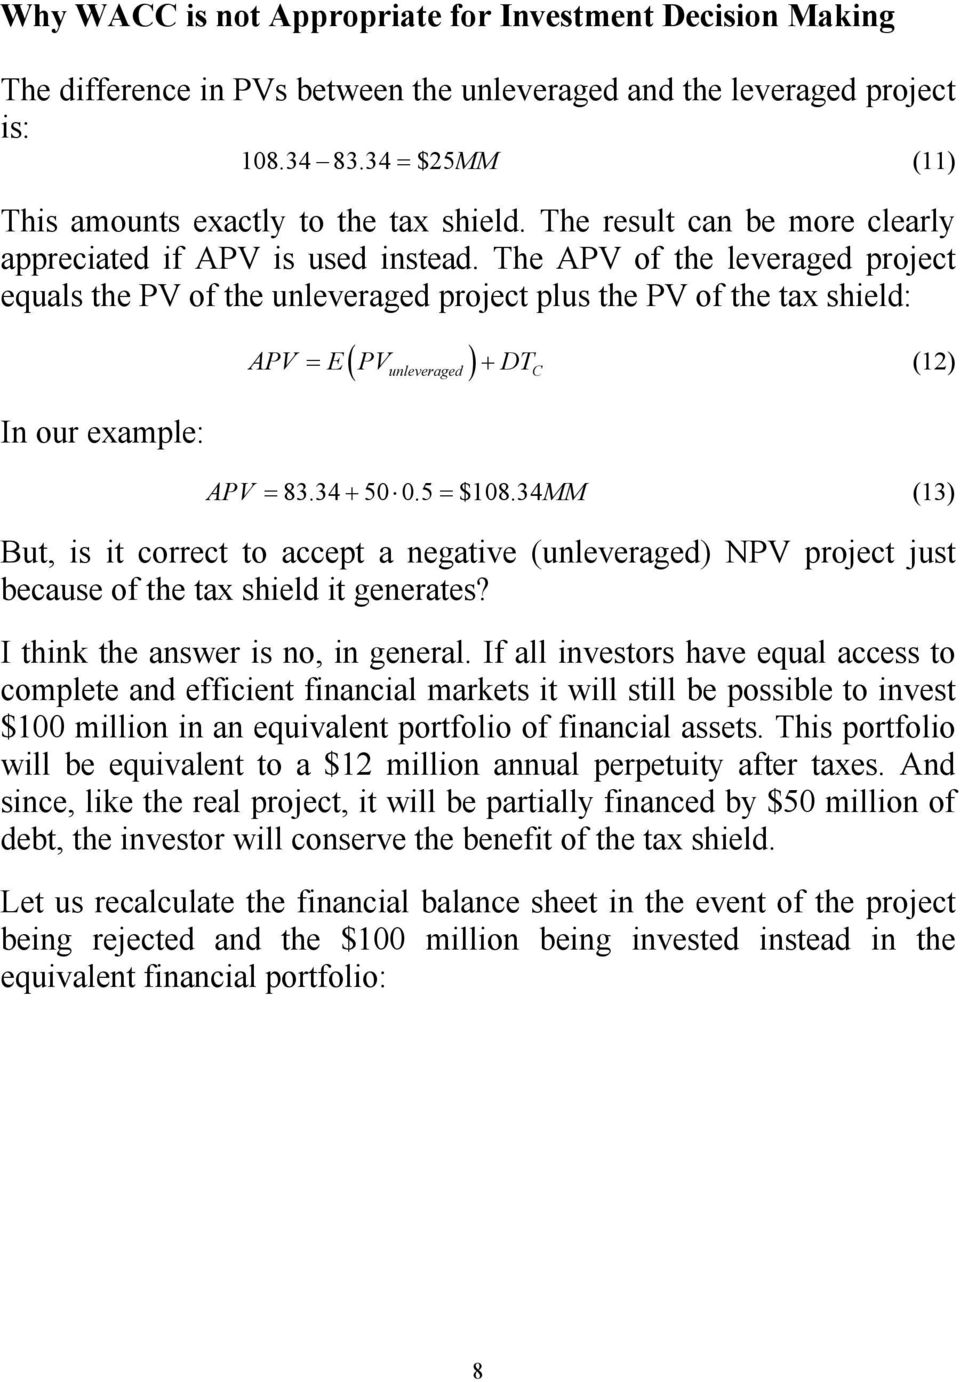 The APV of the leveraged project equals the PV of the unleveraged project plus the PV of the tax shield: In our example: ( unleveraged ) APV = E PV + DT (12) C APV = 83.34 + 50 0.5 = $108.